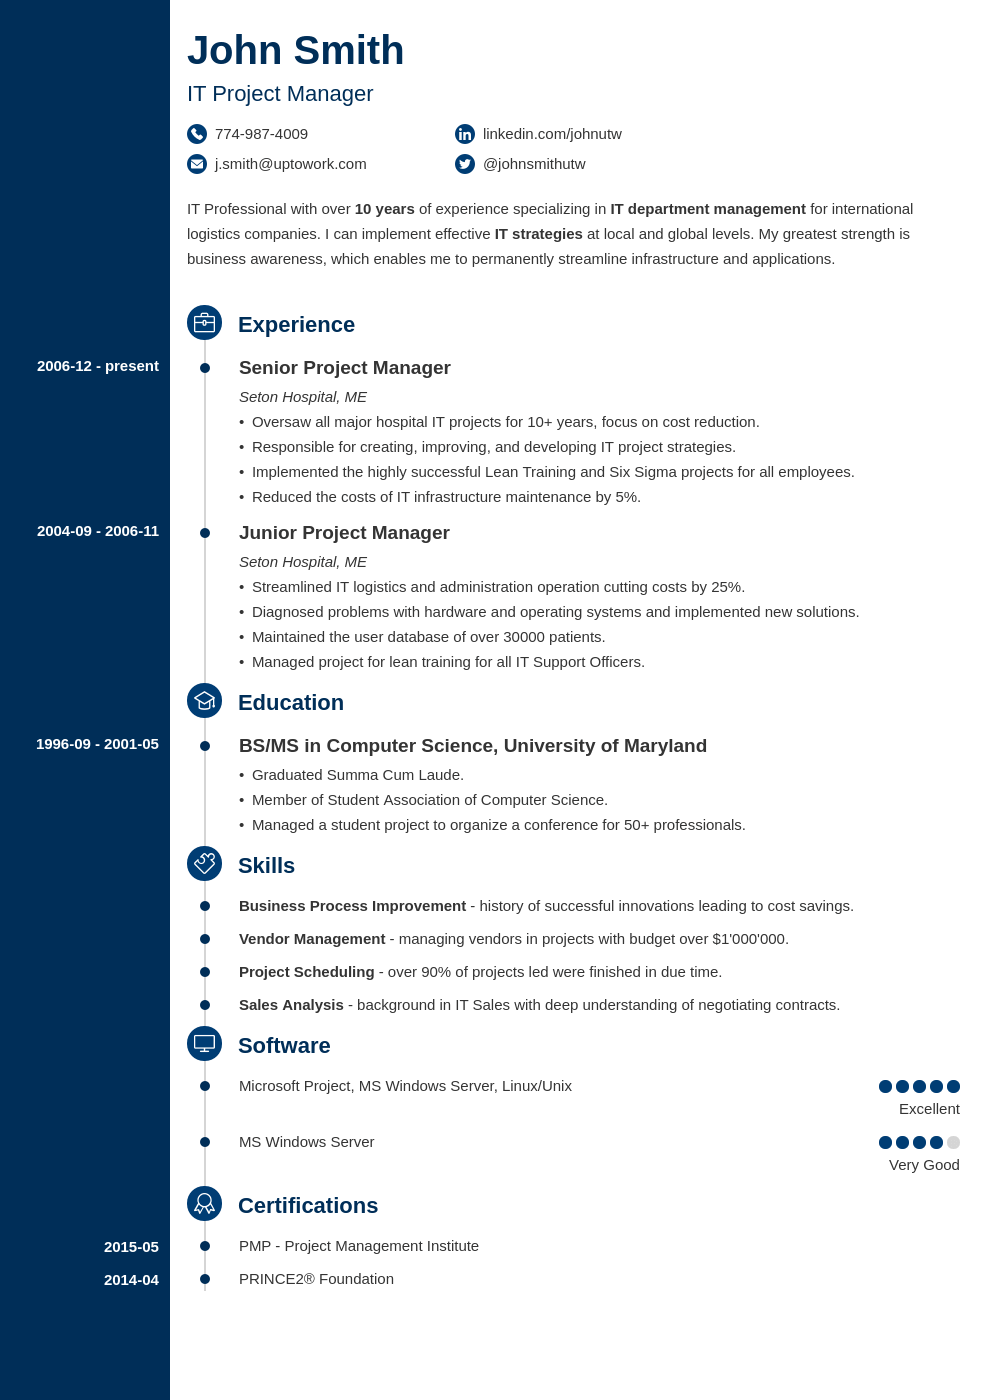 20 cv templates  download a professional curriculum vitae in minutes